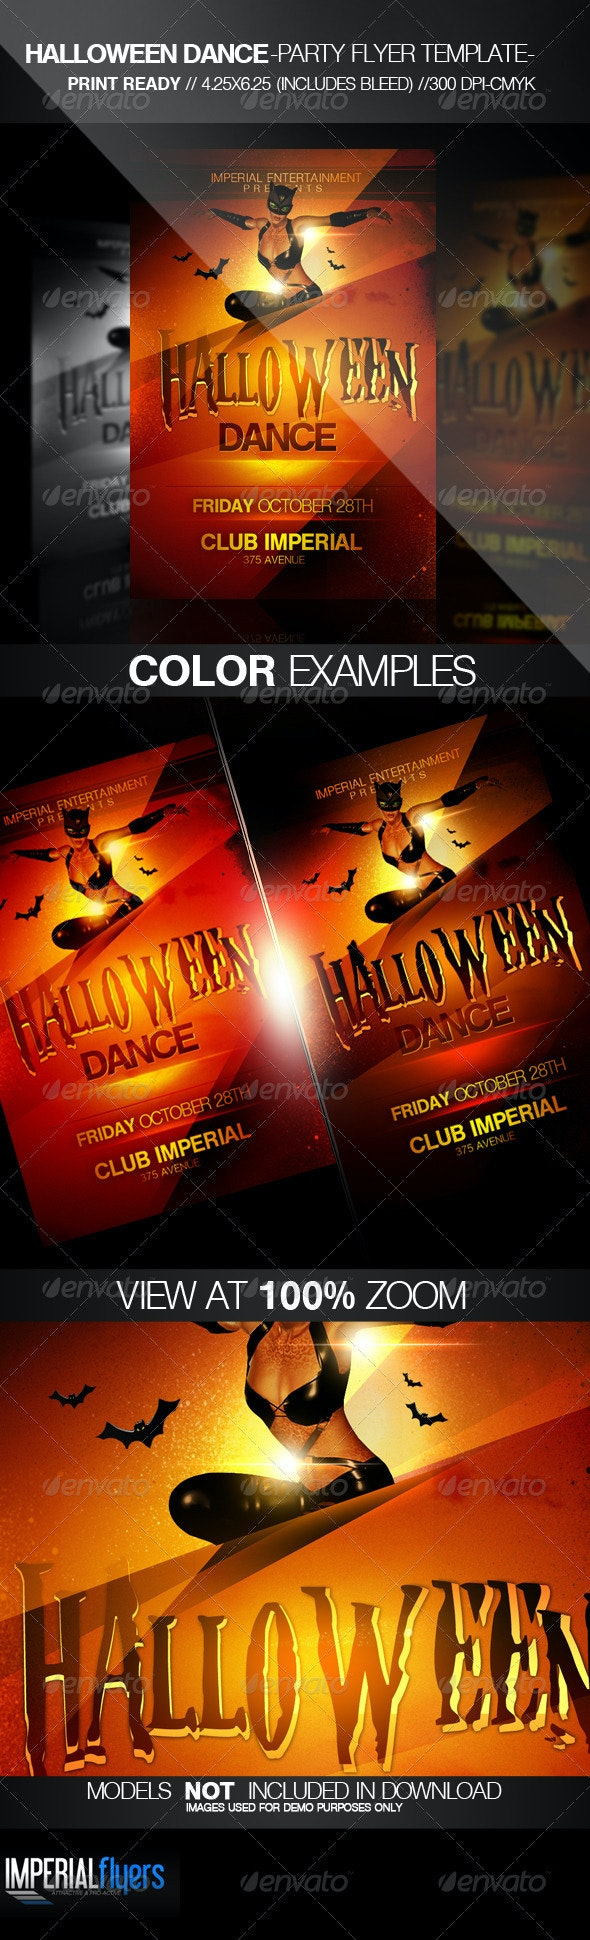 Halloween Dance Party Flyer - Clubs & Parties Events